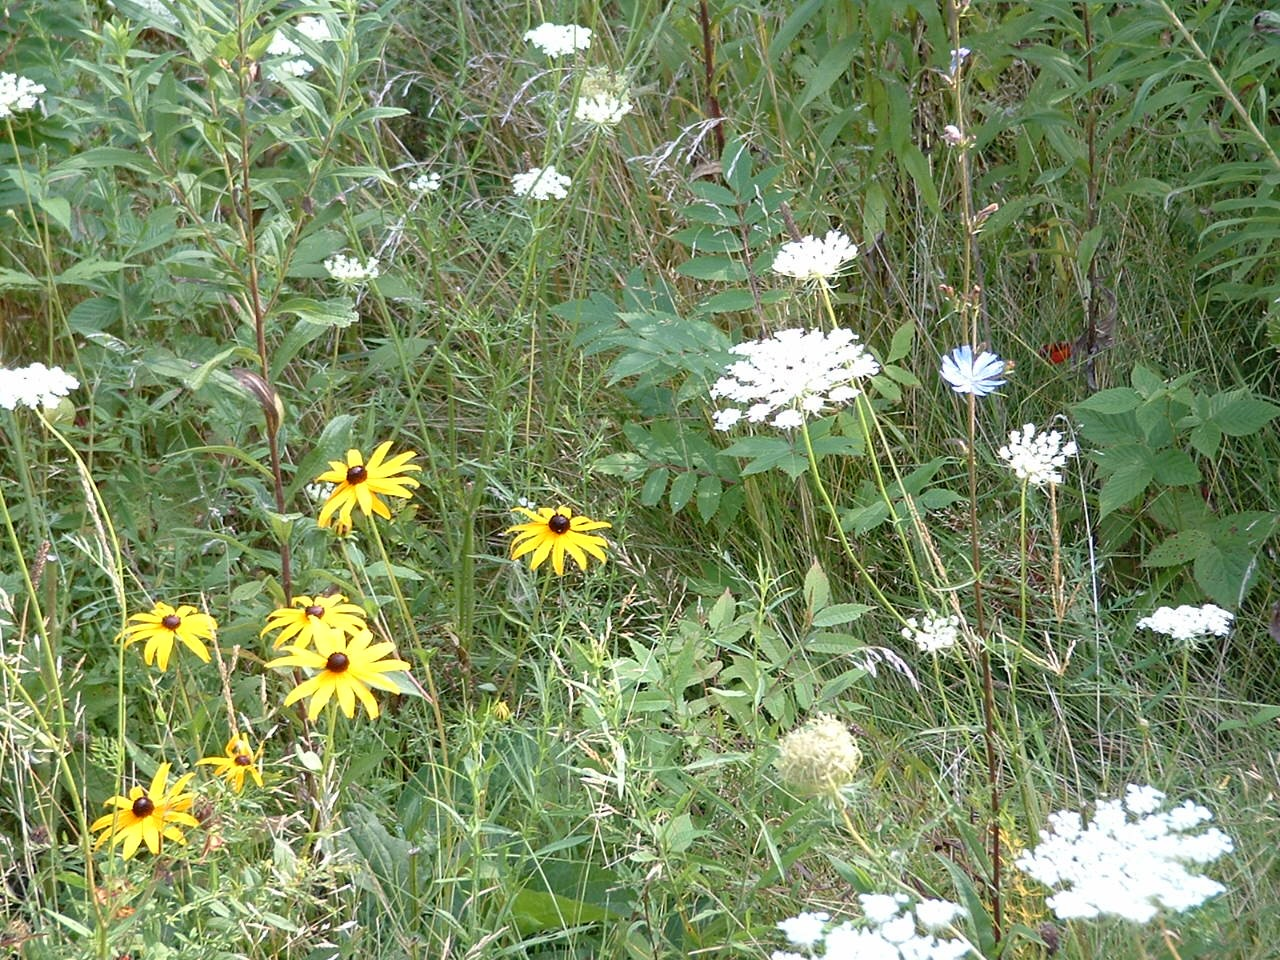 TAKE A WILDFLOWER SELFIE FOR THE TOUR OF WILDFLOWERS IN CLEVELAND METROPARKS